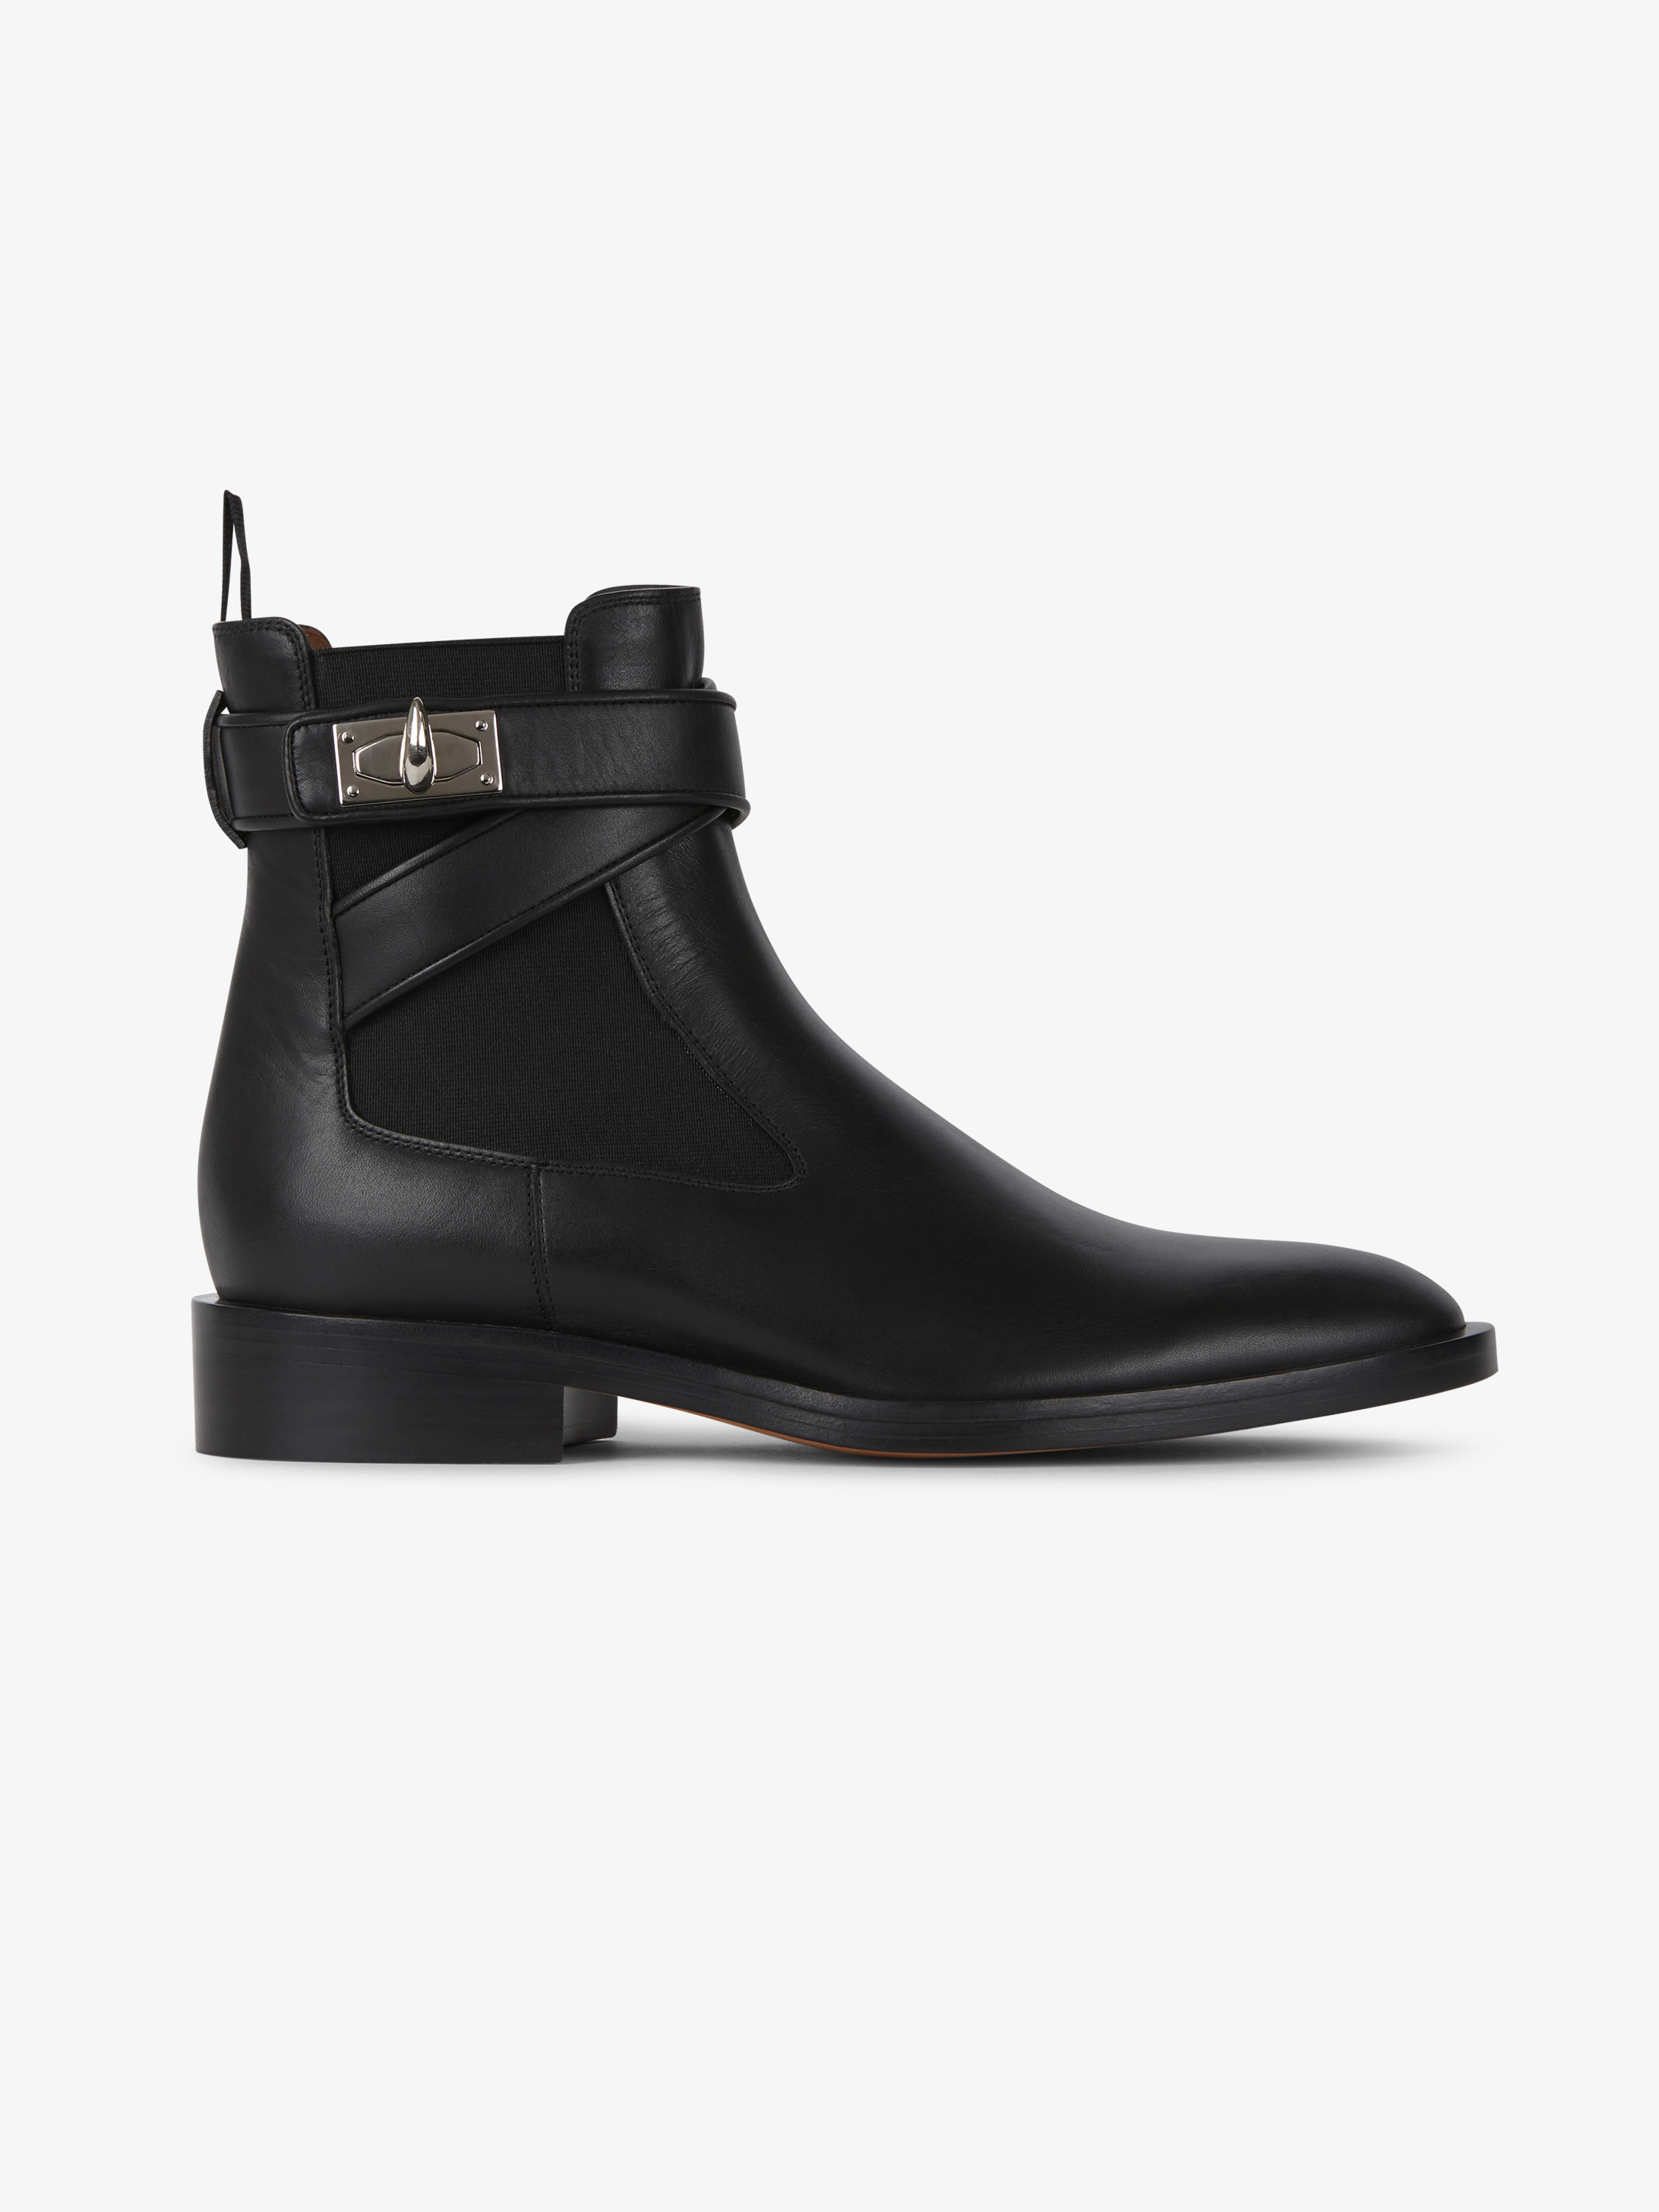 Shark Lock flat ankle boots